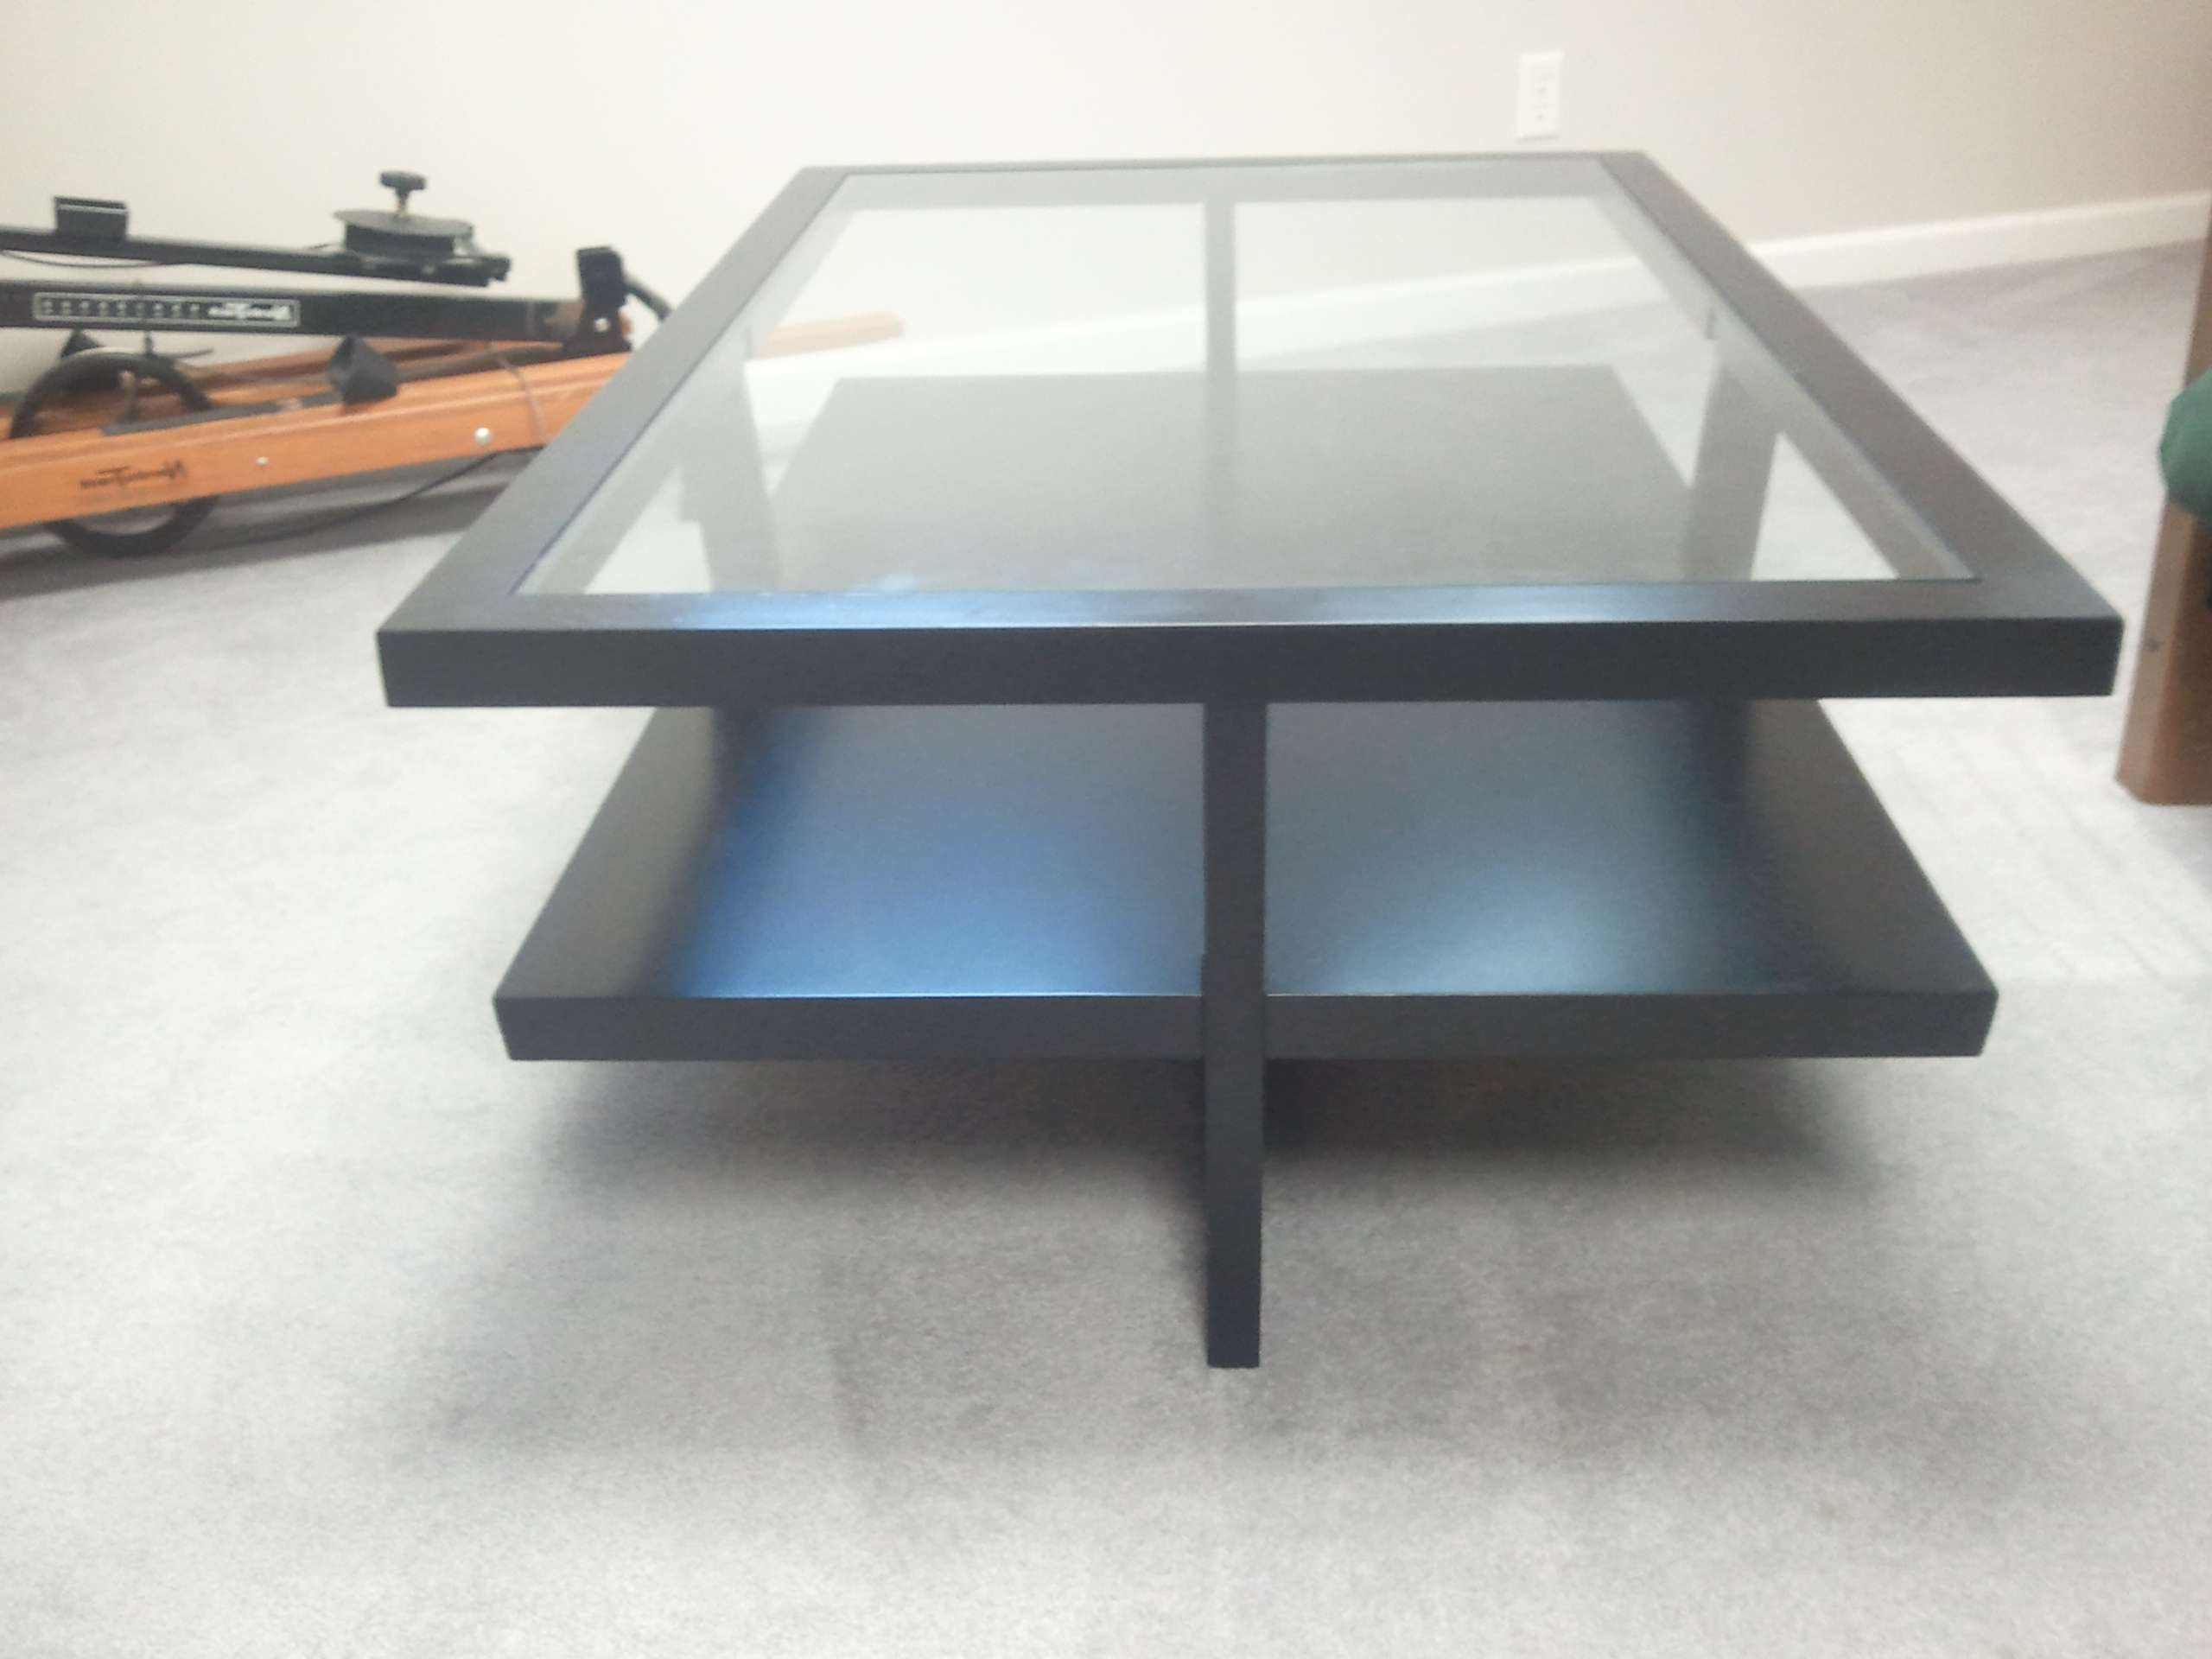 Contemporary Coffee Table Glass – Unique Shaped Coffee Table For Trendy Contemporary Coffee Table (View 5 of 20)